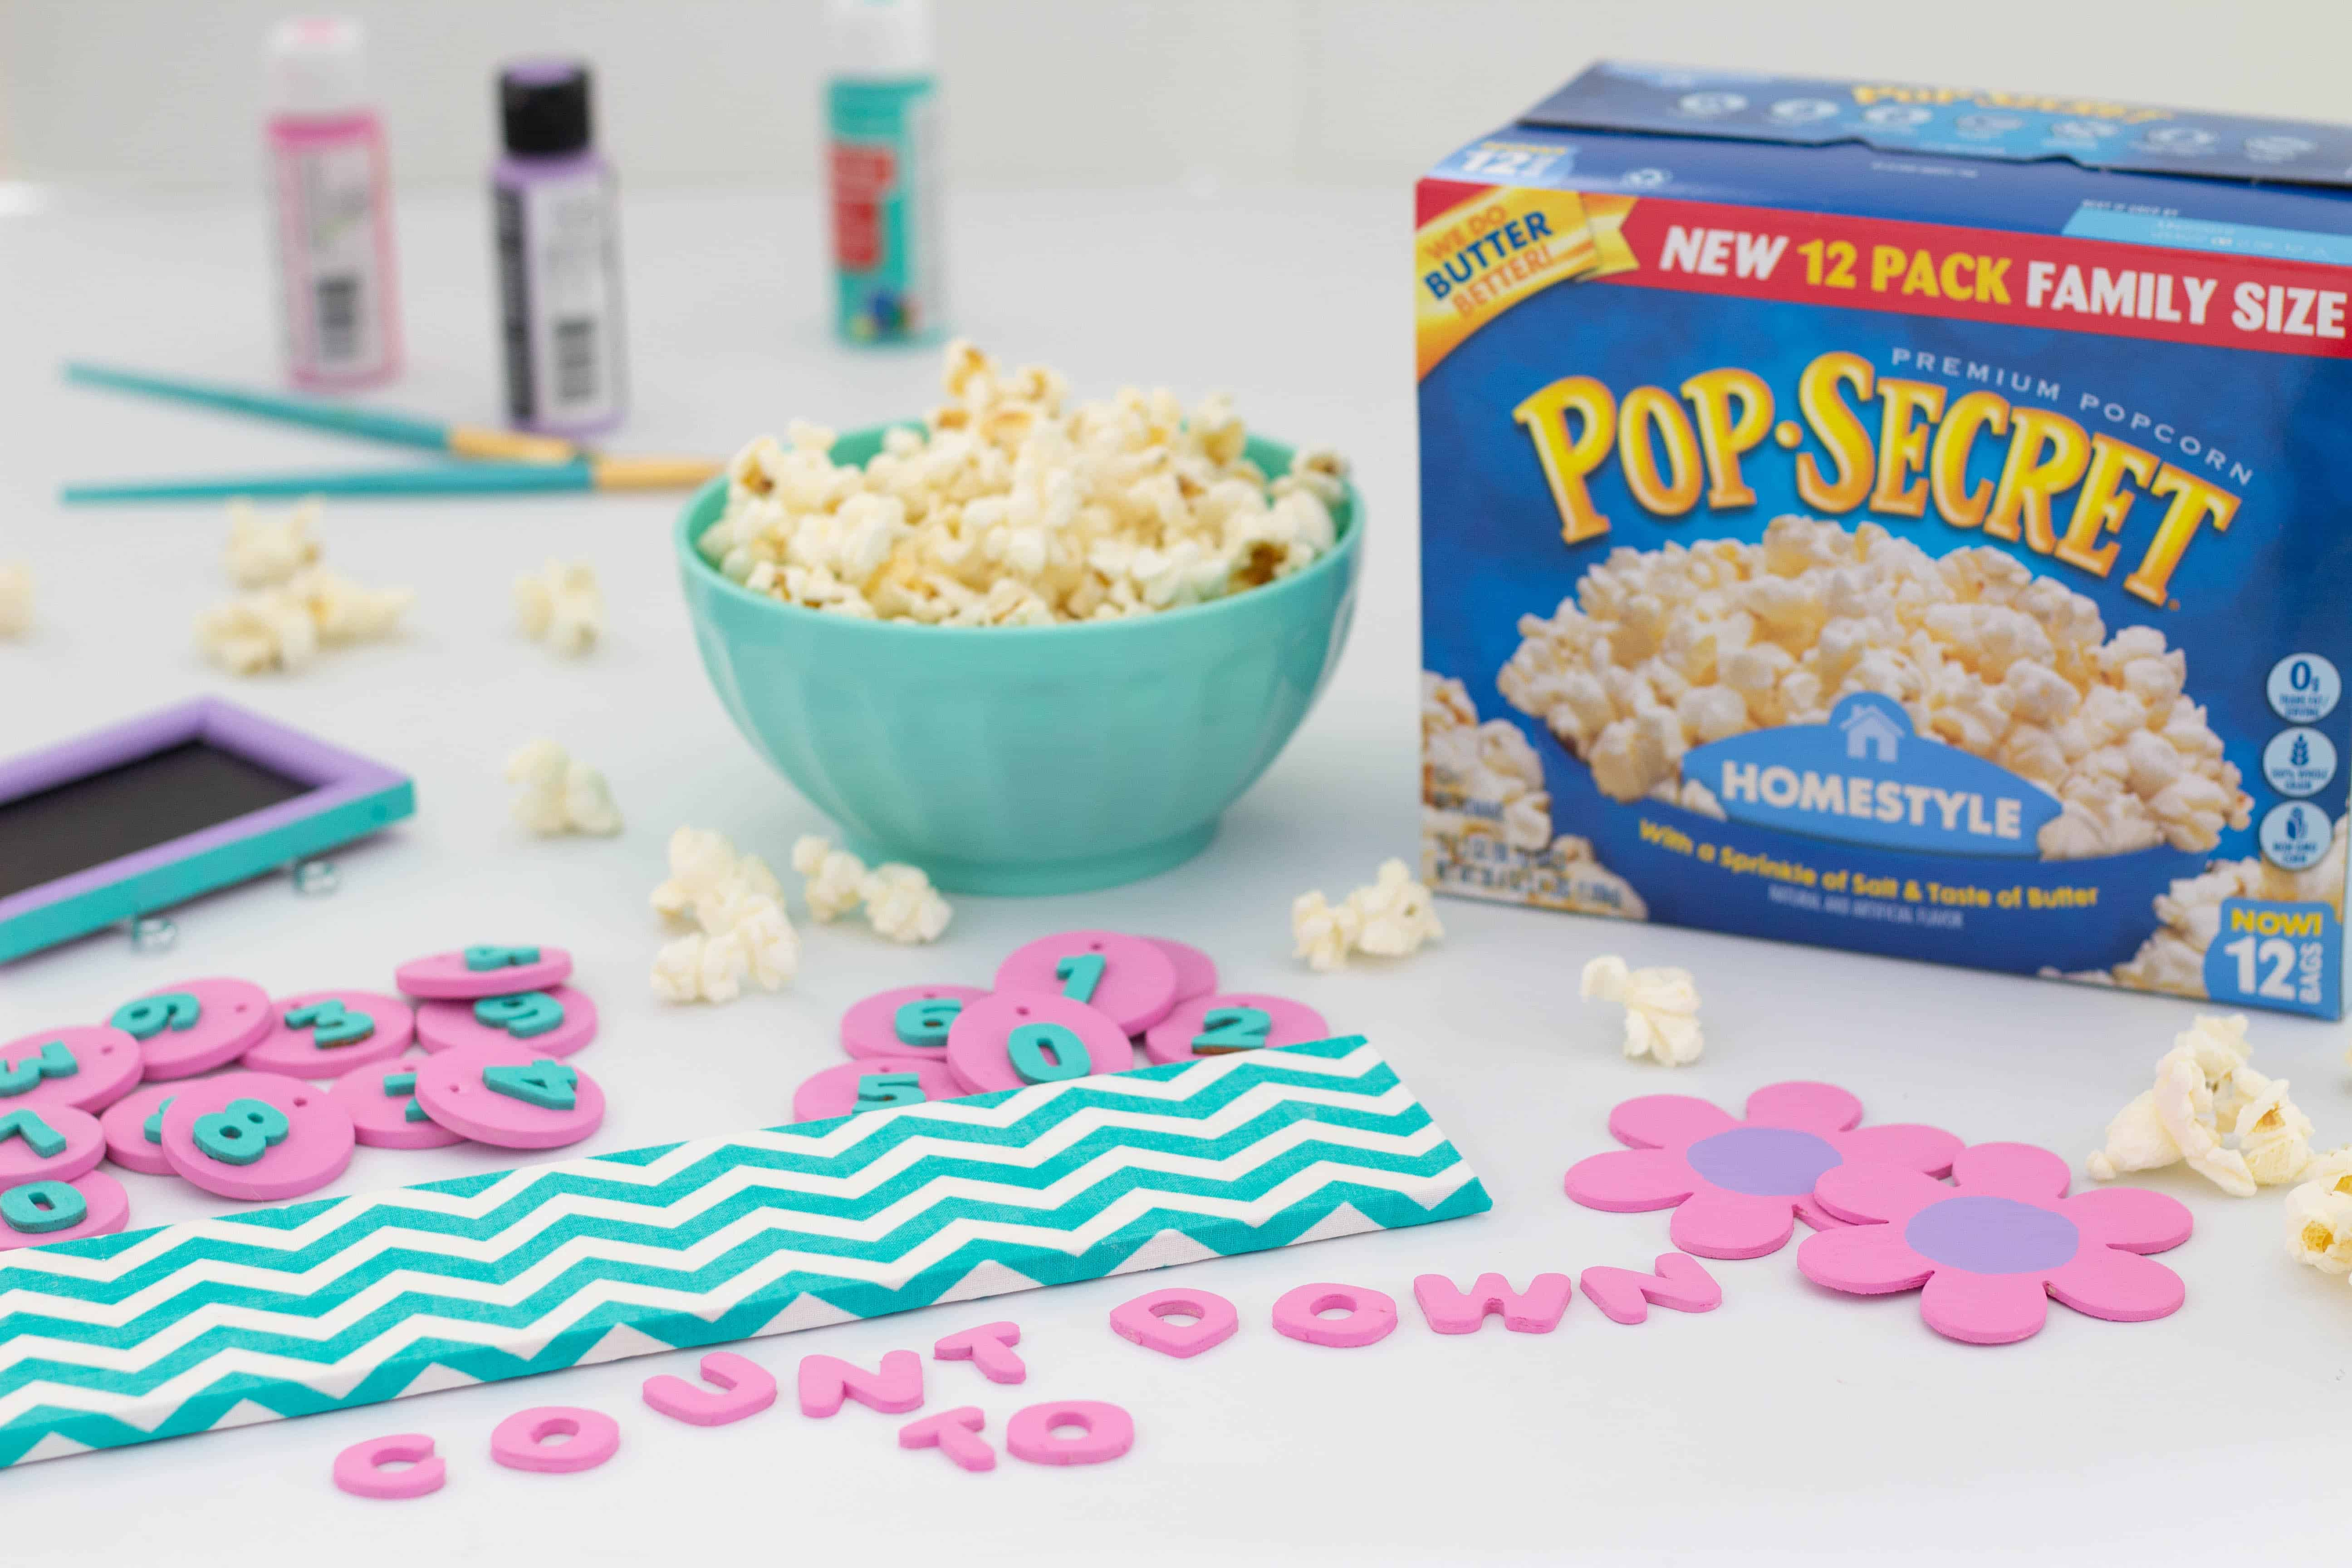 Snacking on popcorn while crafting